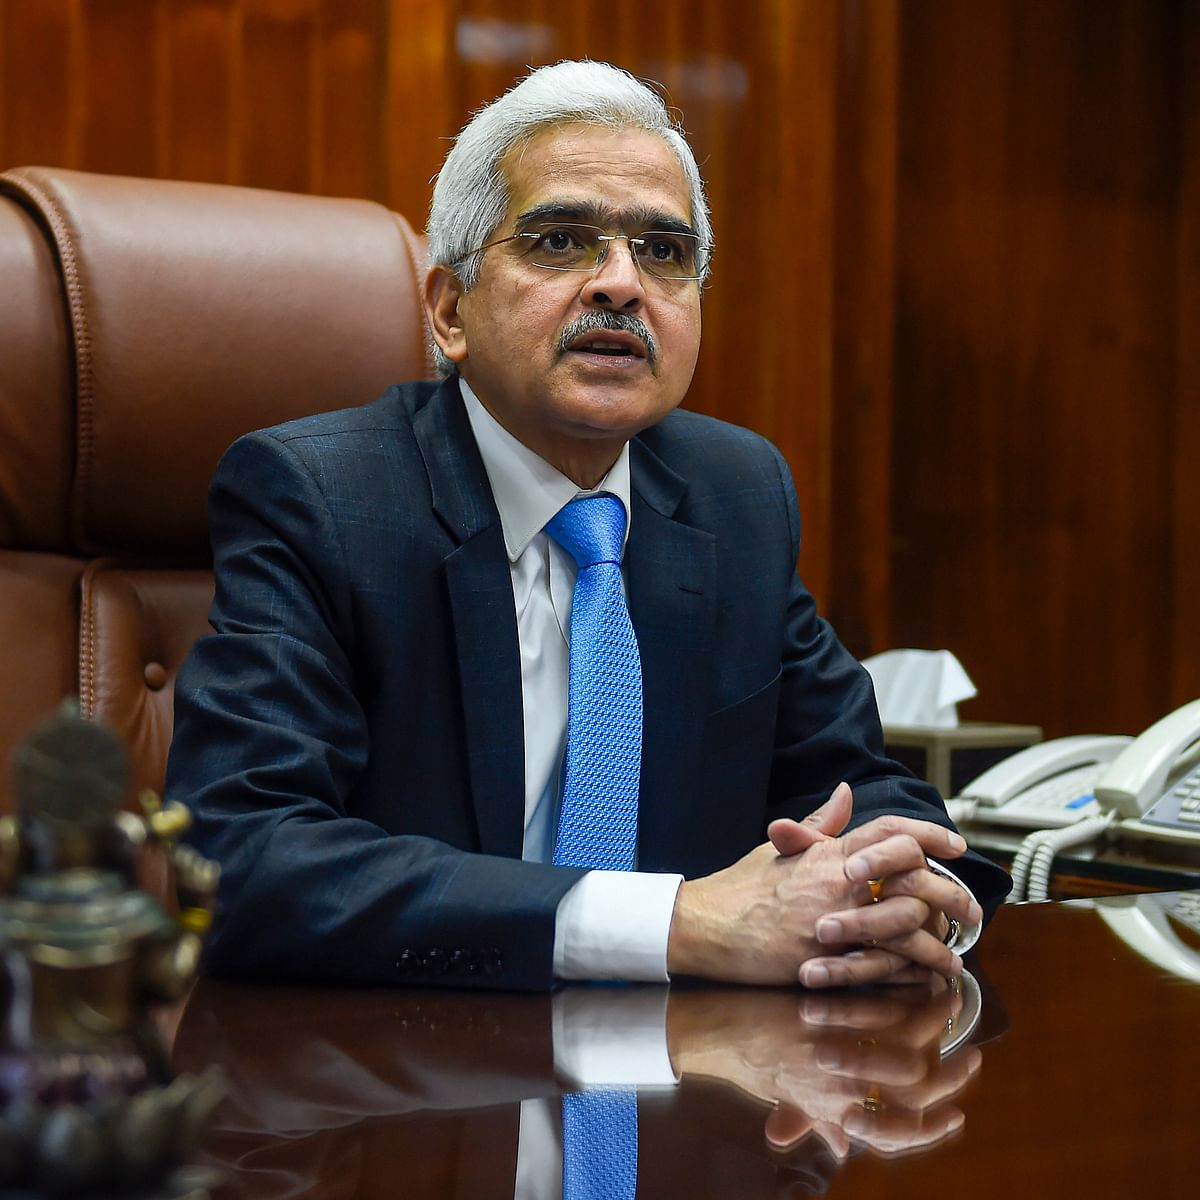 Coronavirus outbreak to have limited impact on India: Shaktikanta Das